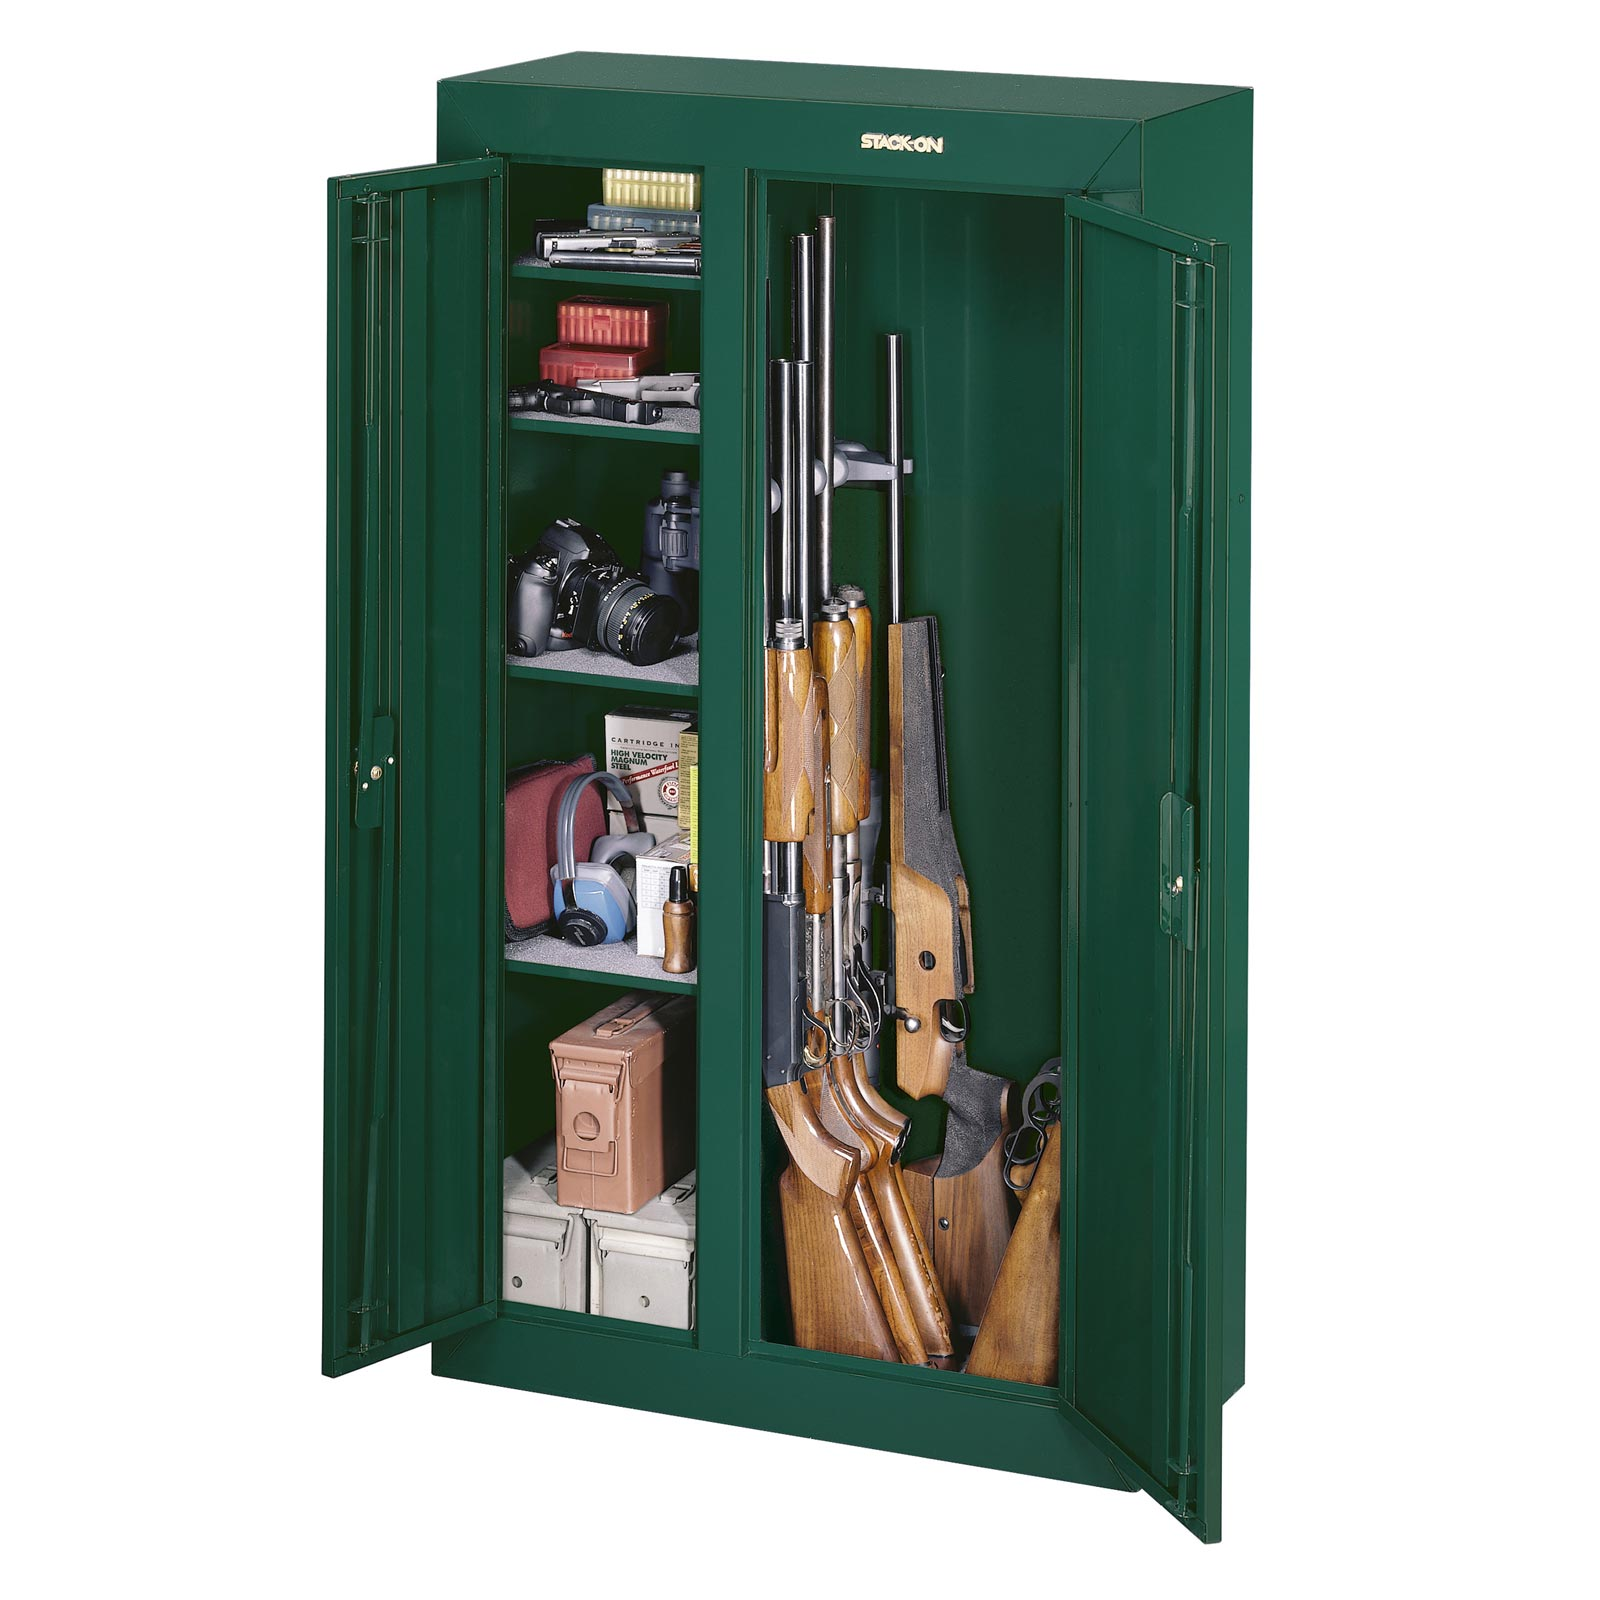 Stack on gcdg 924 gun cabinet double door security cabinet for Best spray gun for kitchen cabinets